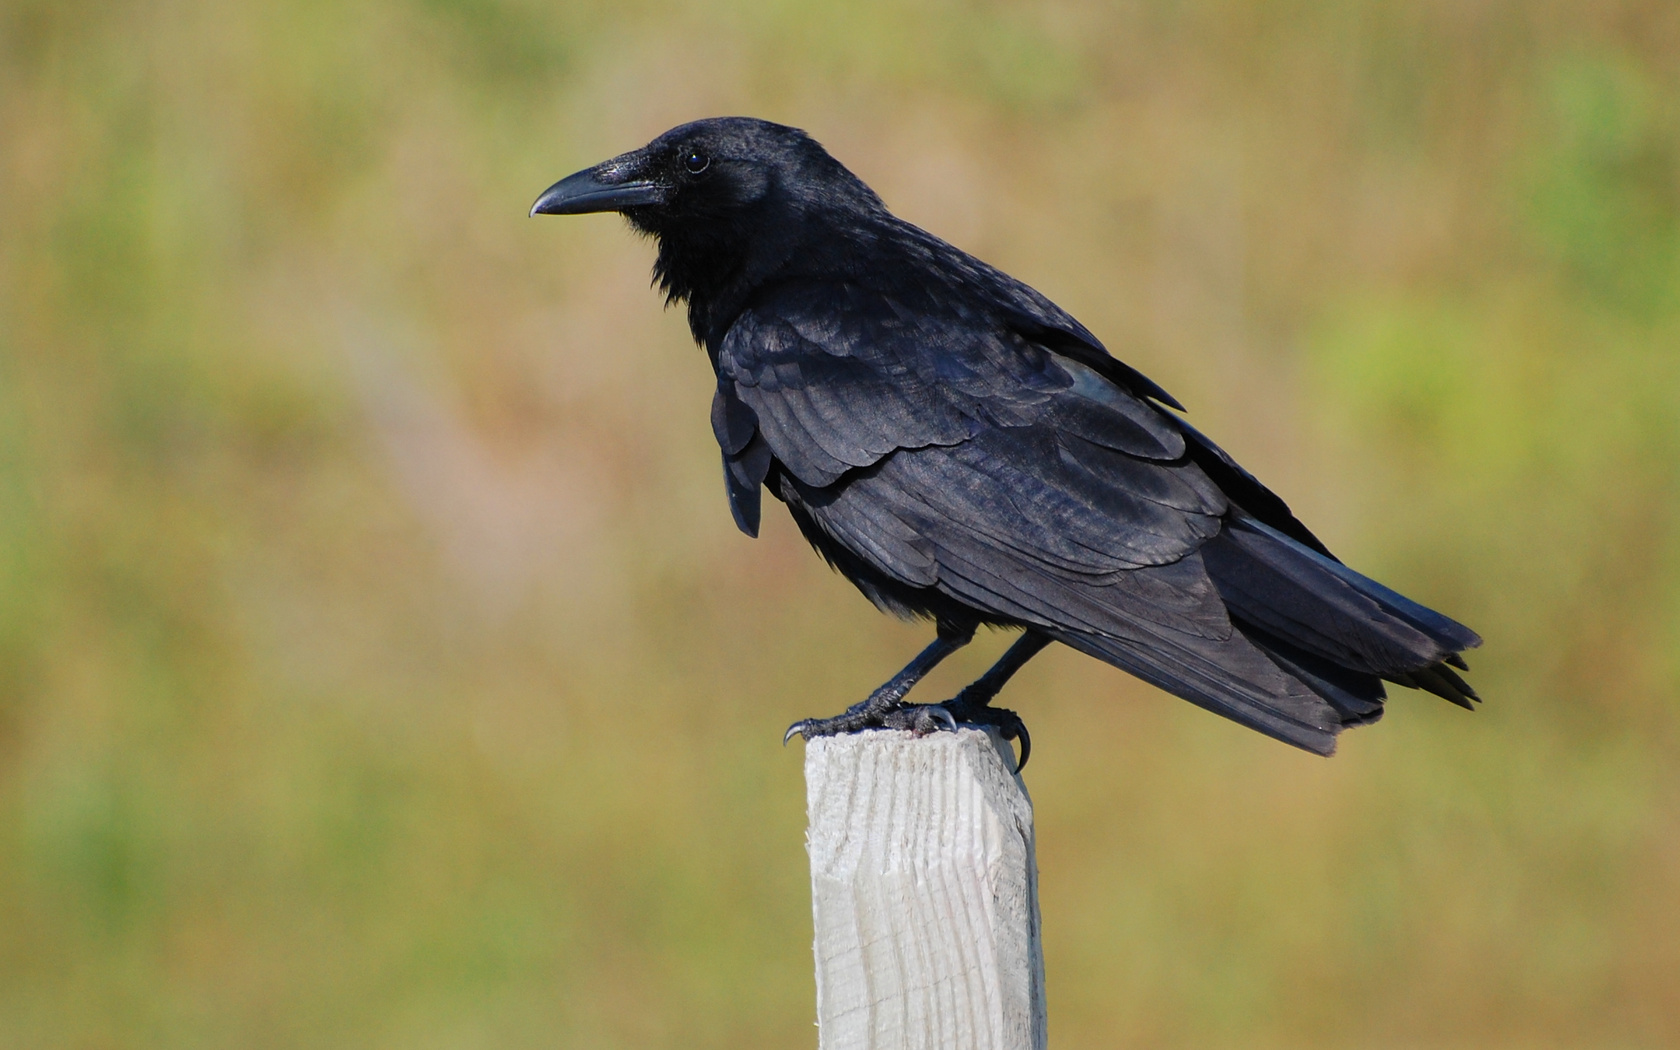 The Fish Crow is a close relative of the common American Crow adapted to coastal habitat. They are almost impossible to tell apart by sight, ...